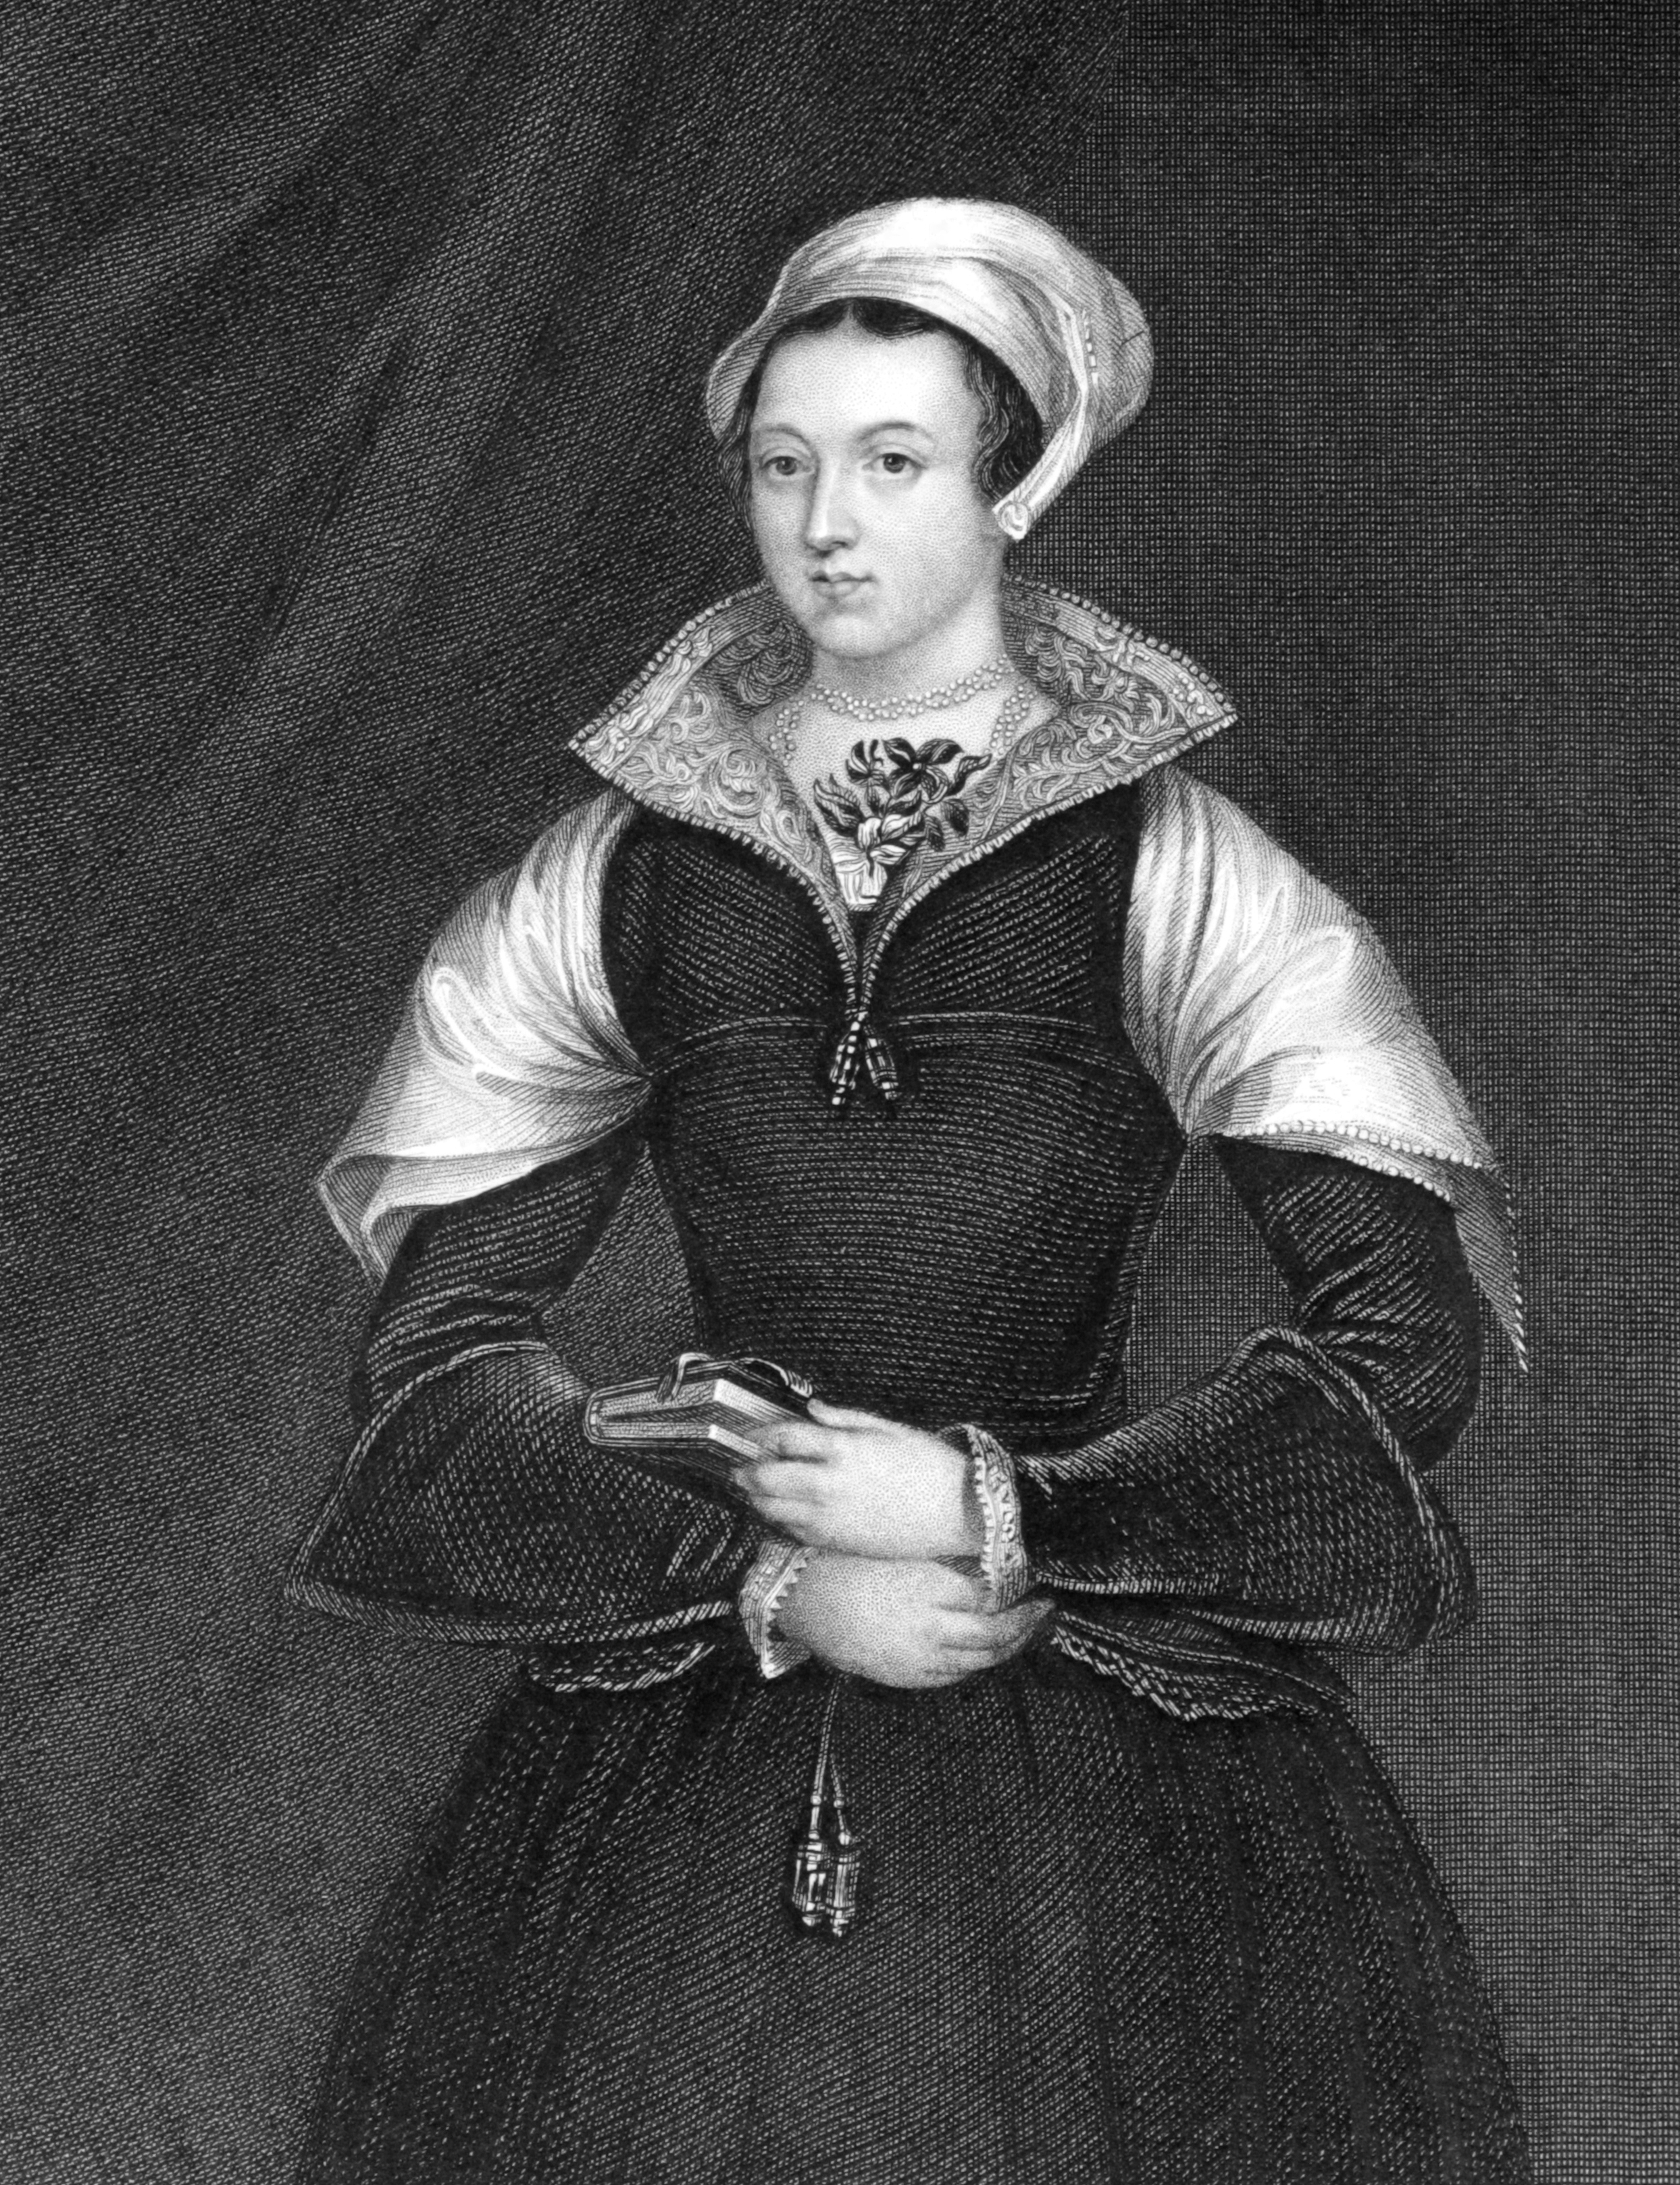 Lady Jane Grey was only queen for 9 days.